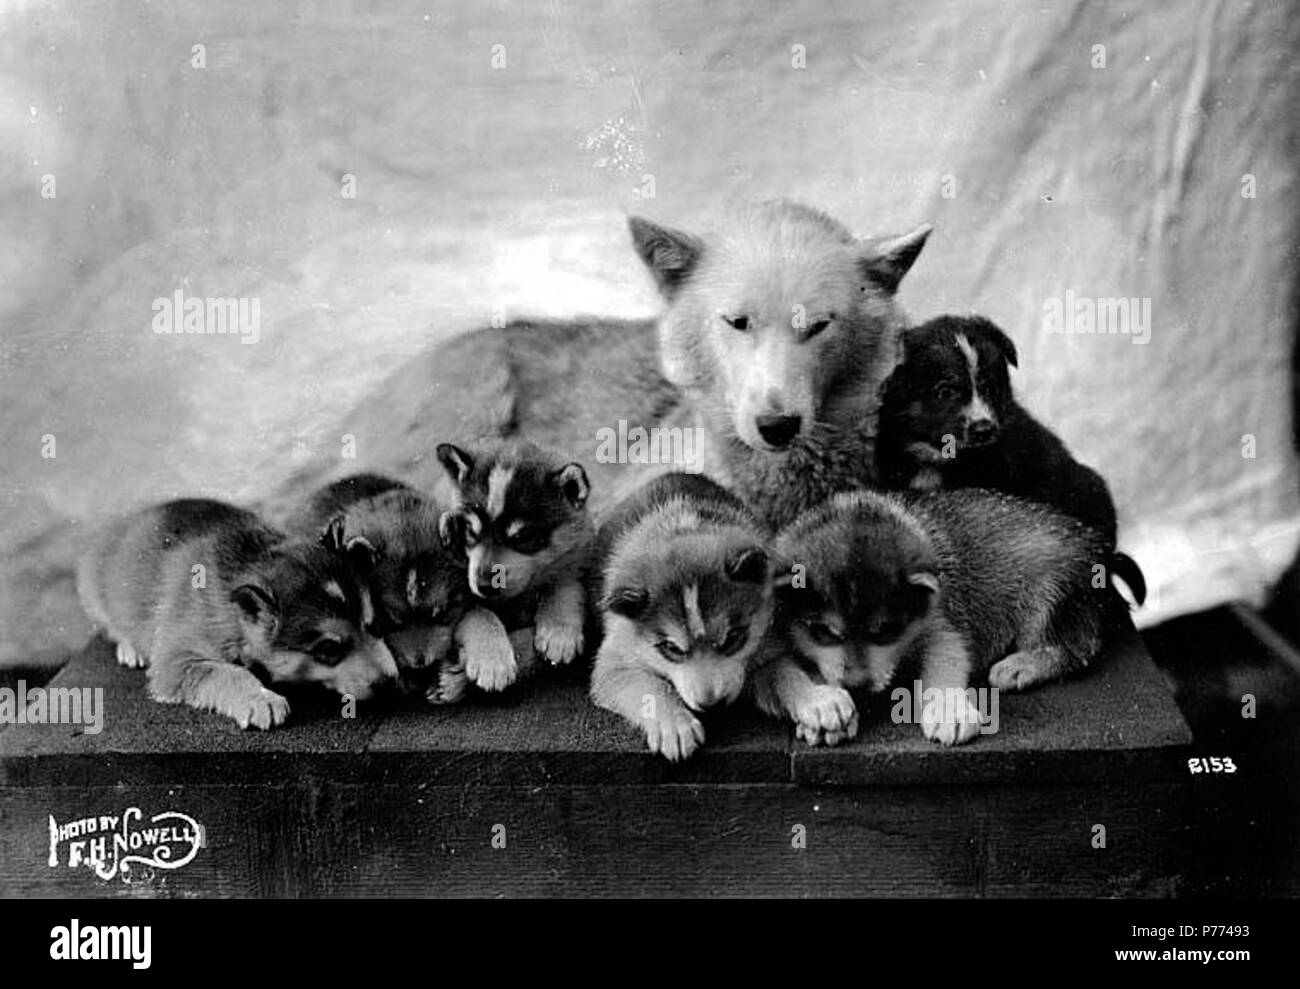 Alaskan Malamute Black and White Stock Photos & Images - Alamy